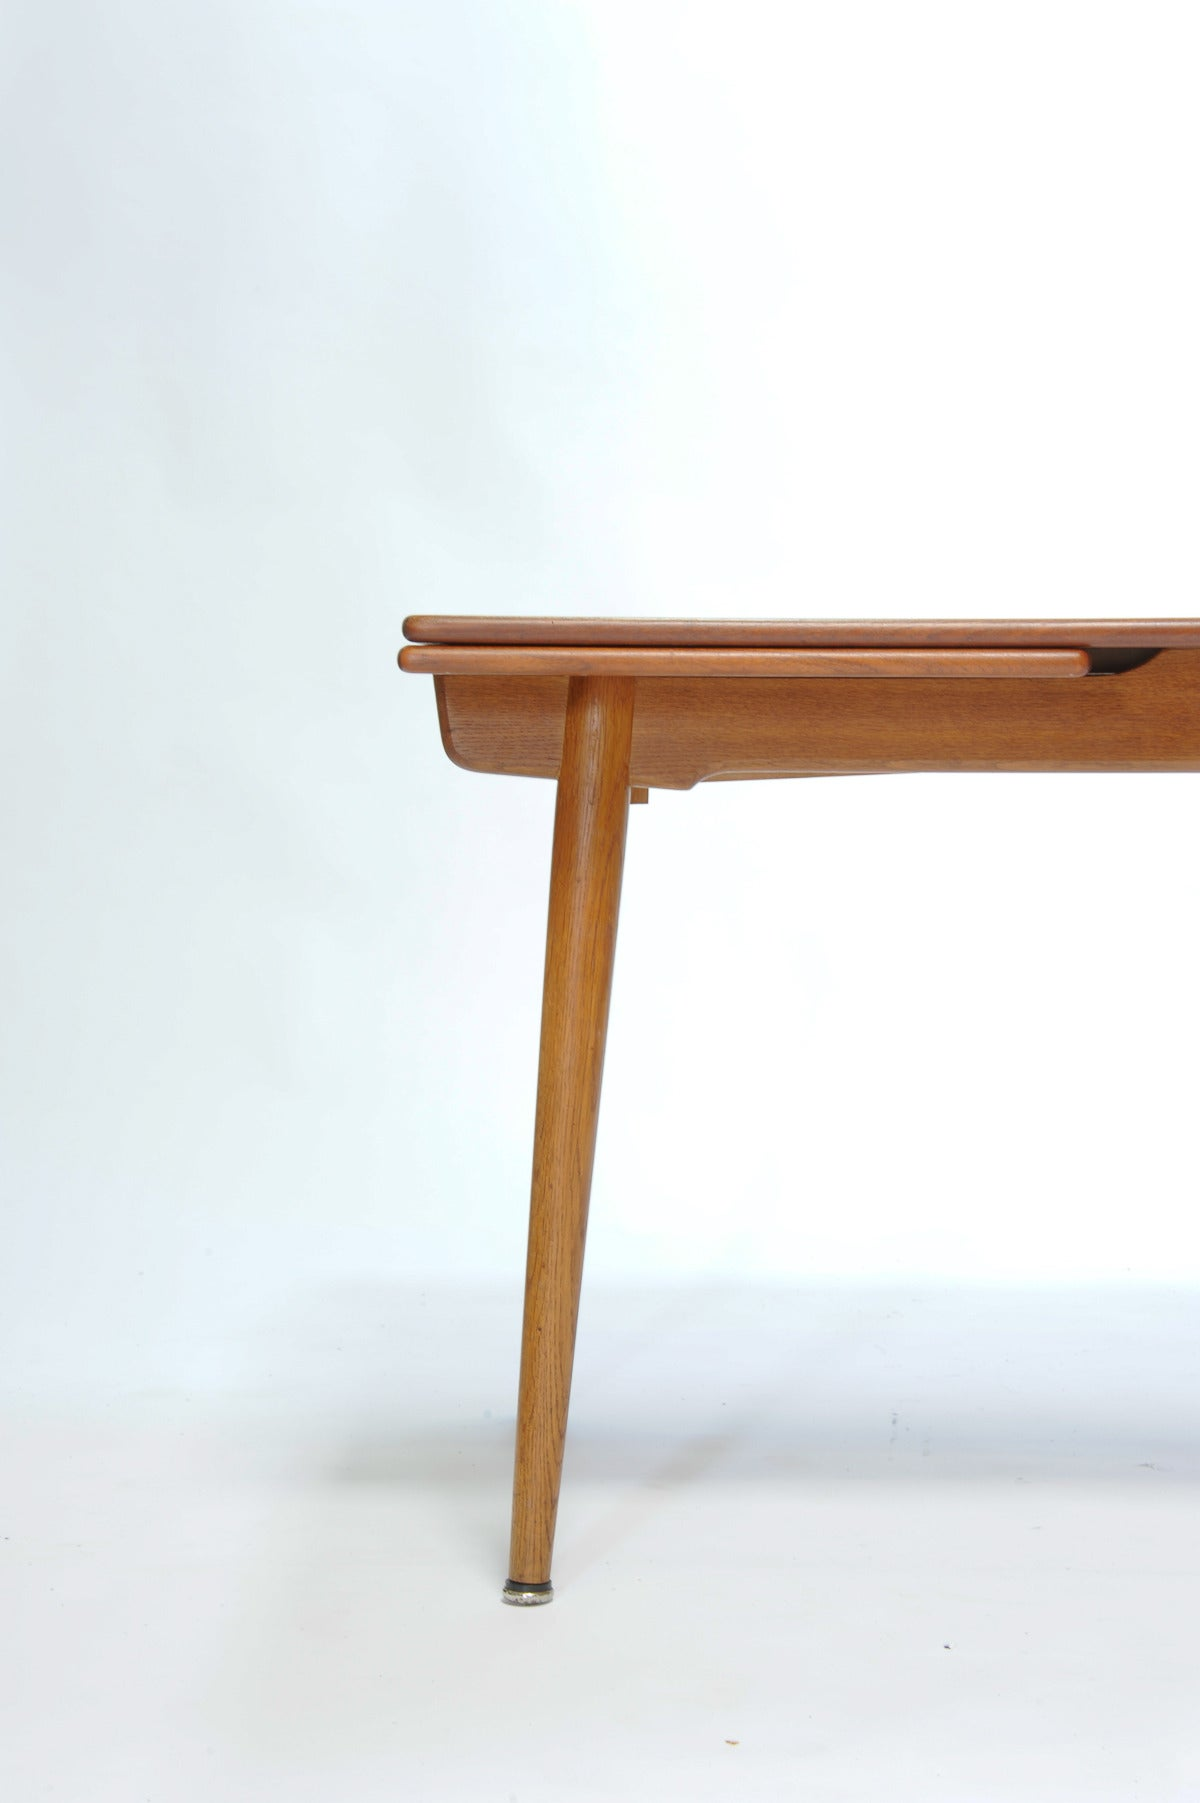 Hans wegner at312 dining table for andreas tuck for sale Andreas furniture